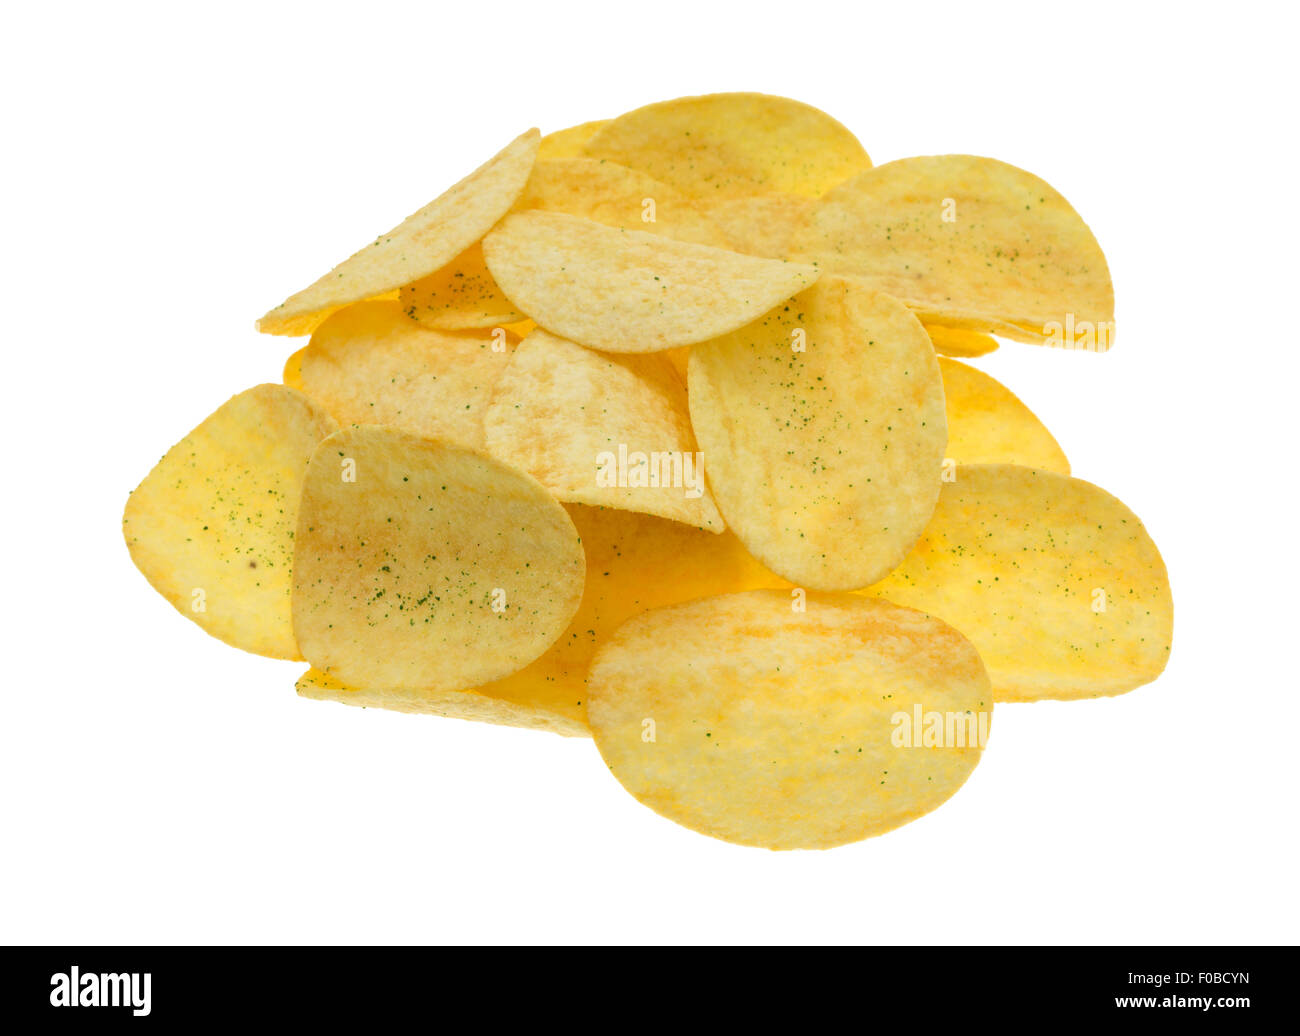 A group of potato chips seasoned with sour cream and chives isolated on a white background. - Stock Image